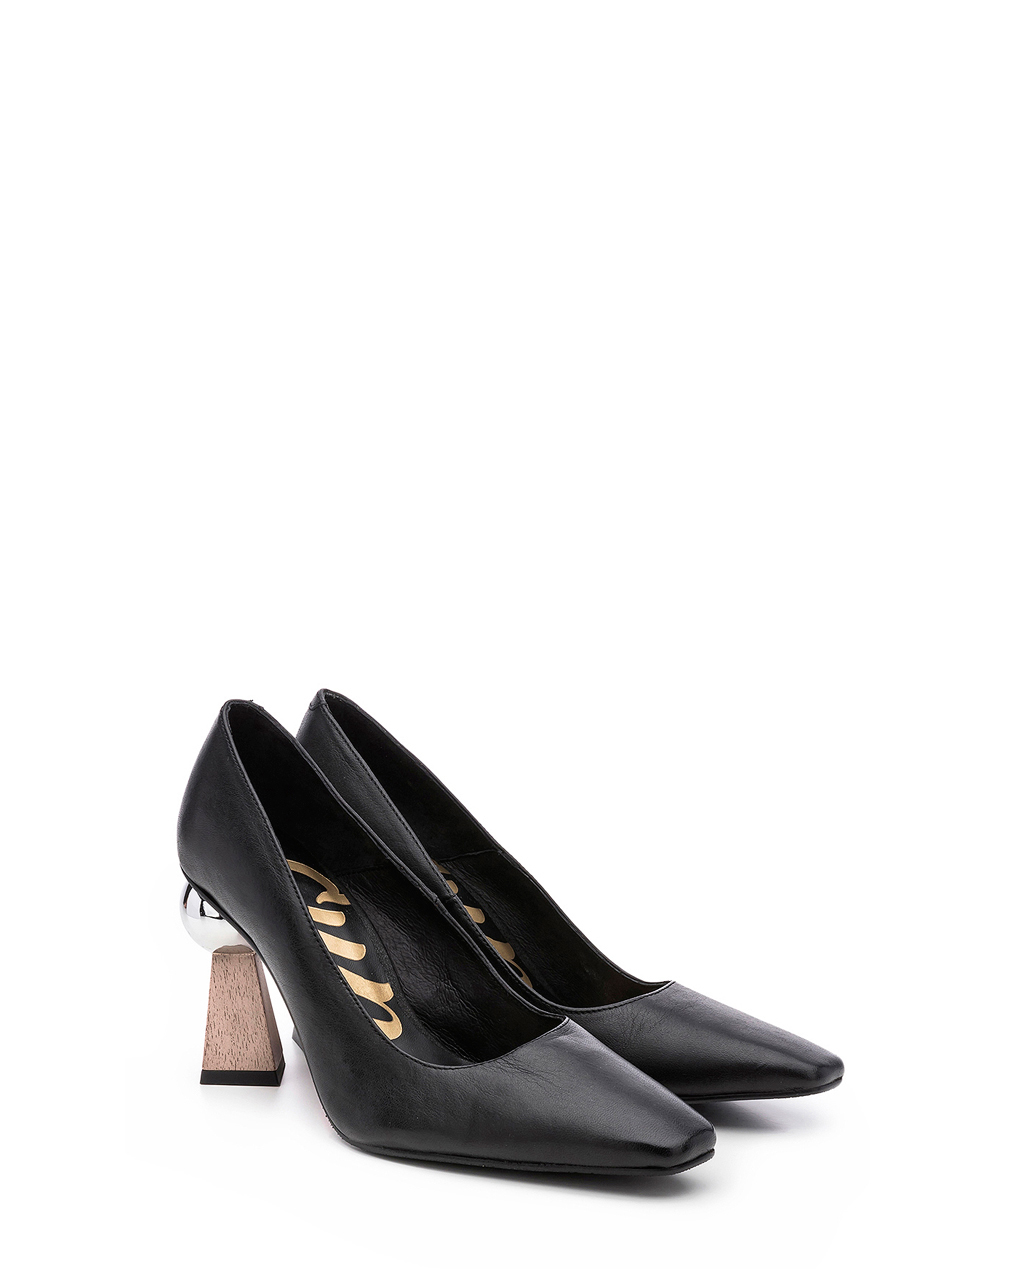 Cuple Leather Shoes Black shop 25 70% | Gratis